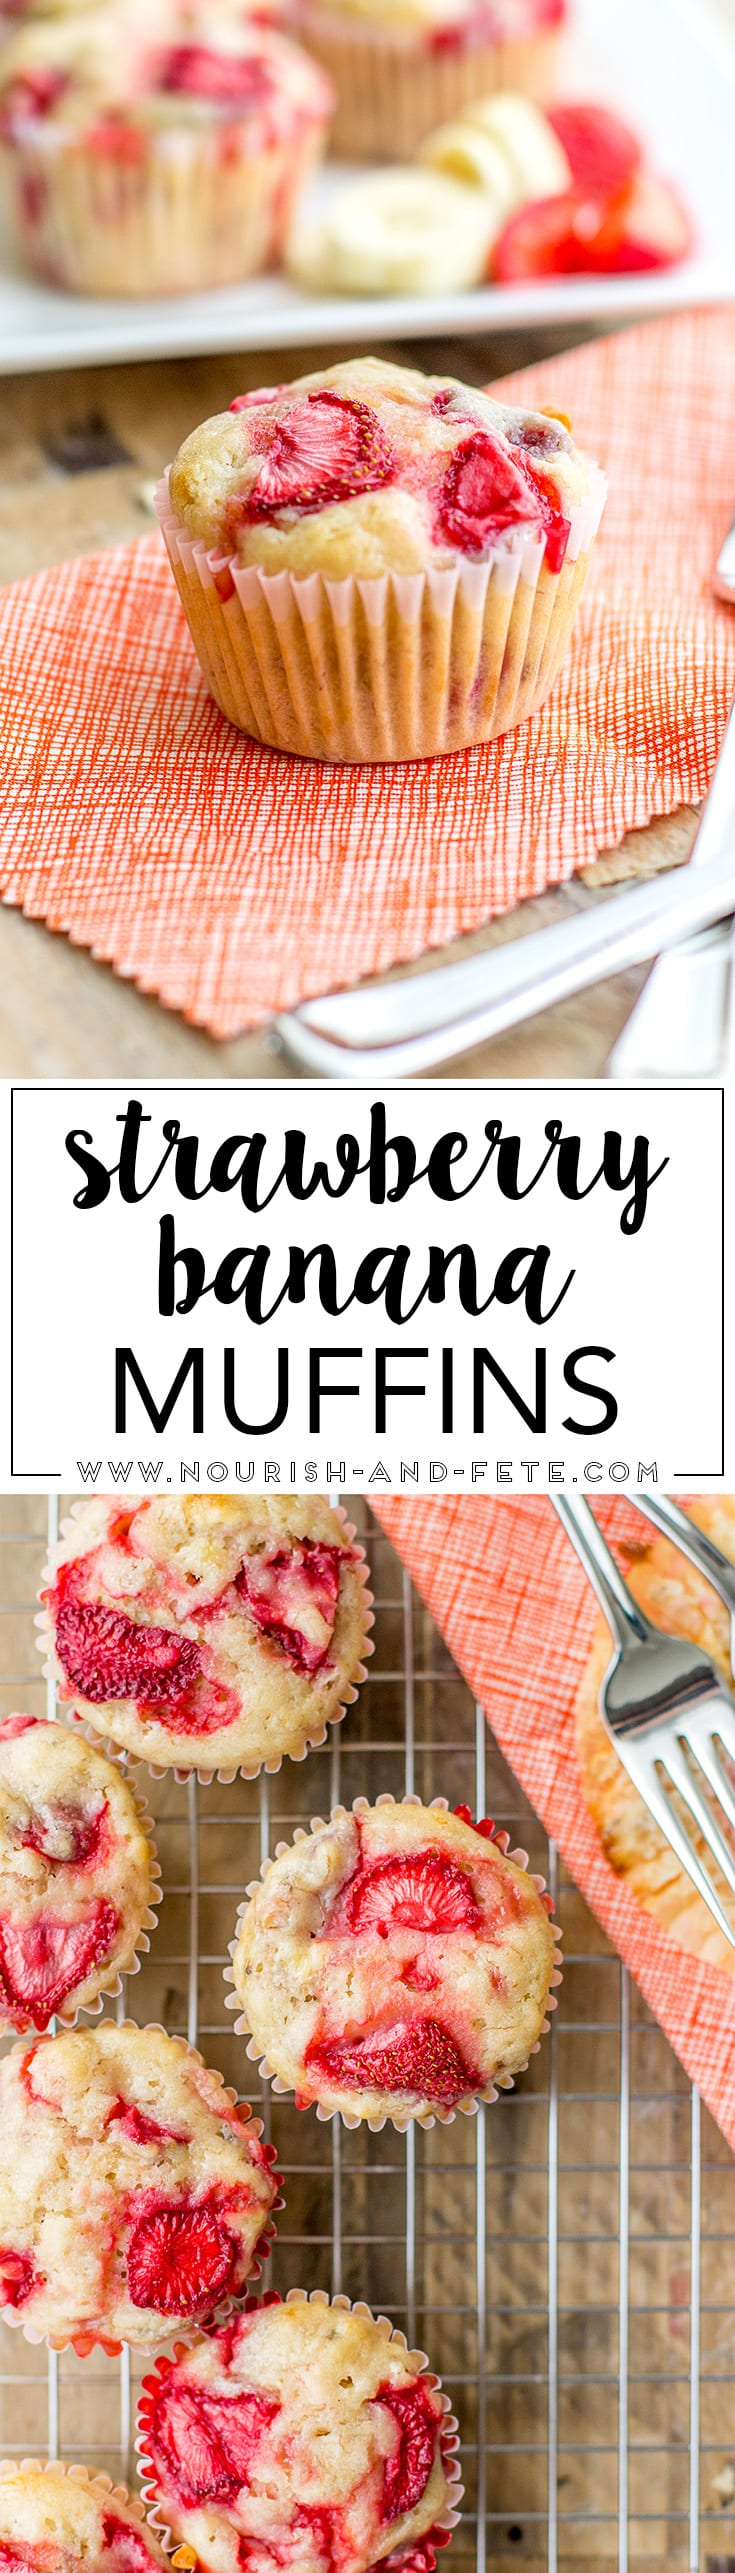 Luscious strawberry banana muffins, mixed quickly by hand in one bowl. https://www.nourish-and-fete.com